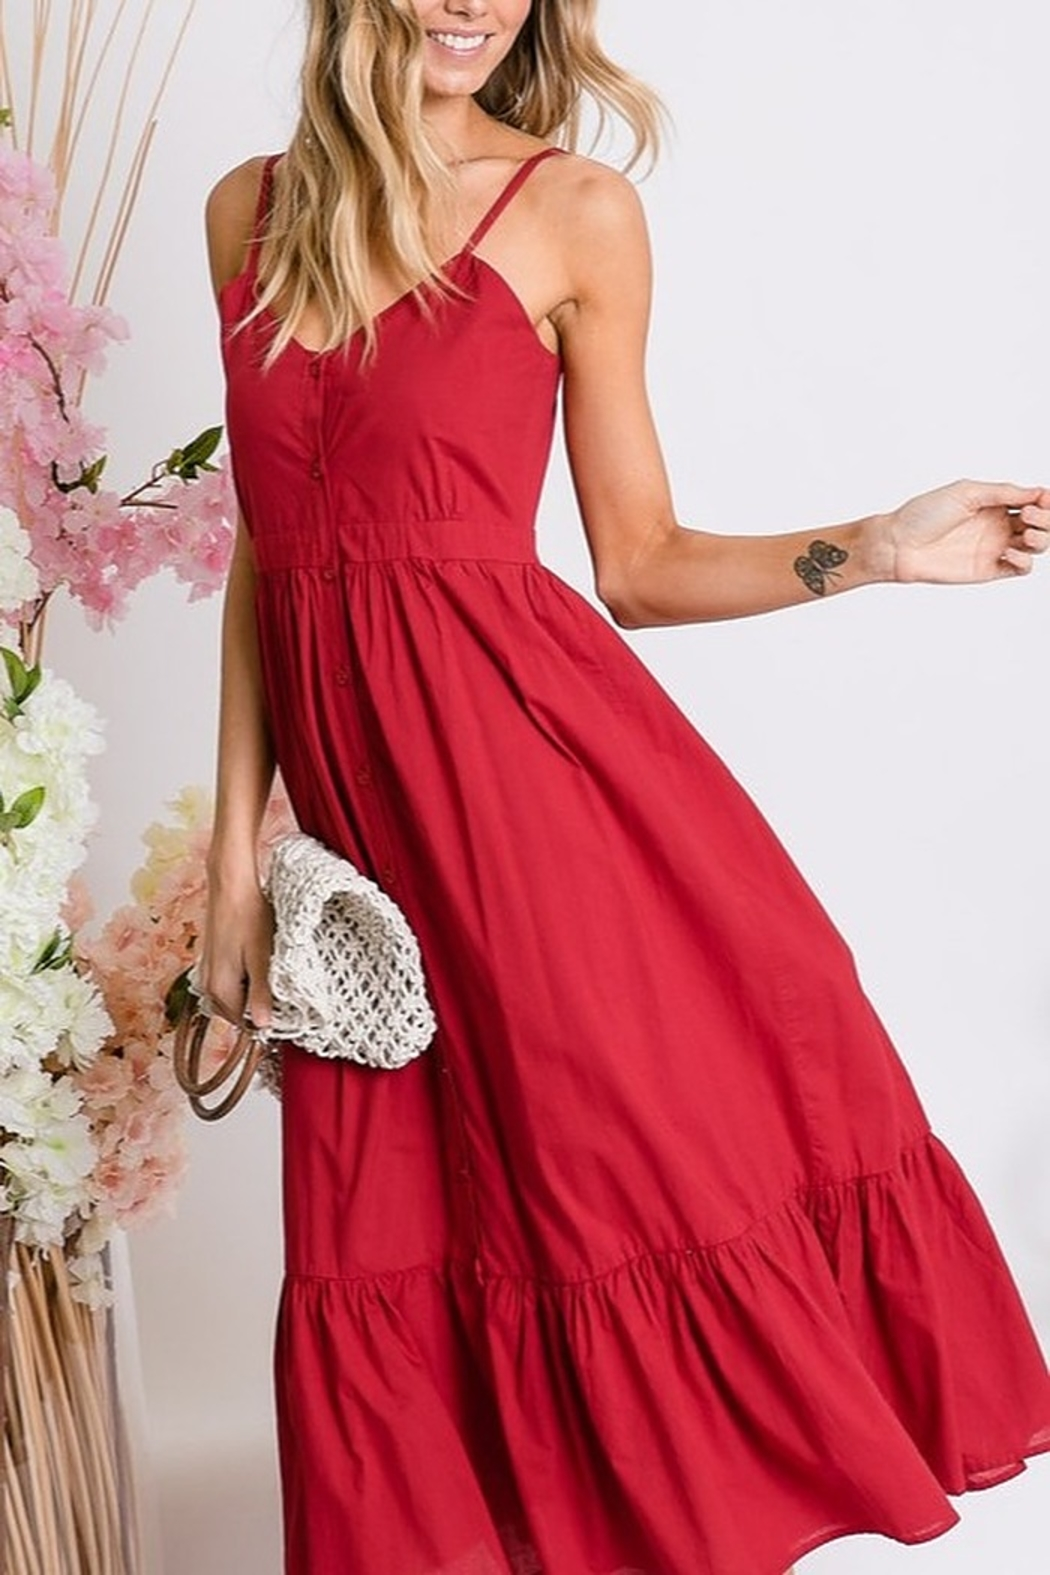 Lyn -Maree's The Perfect Red Dress - Main Image